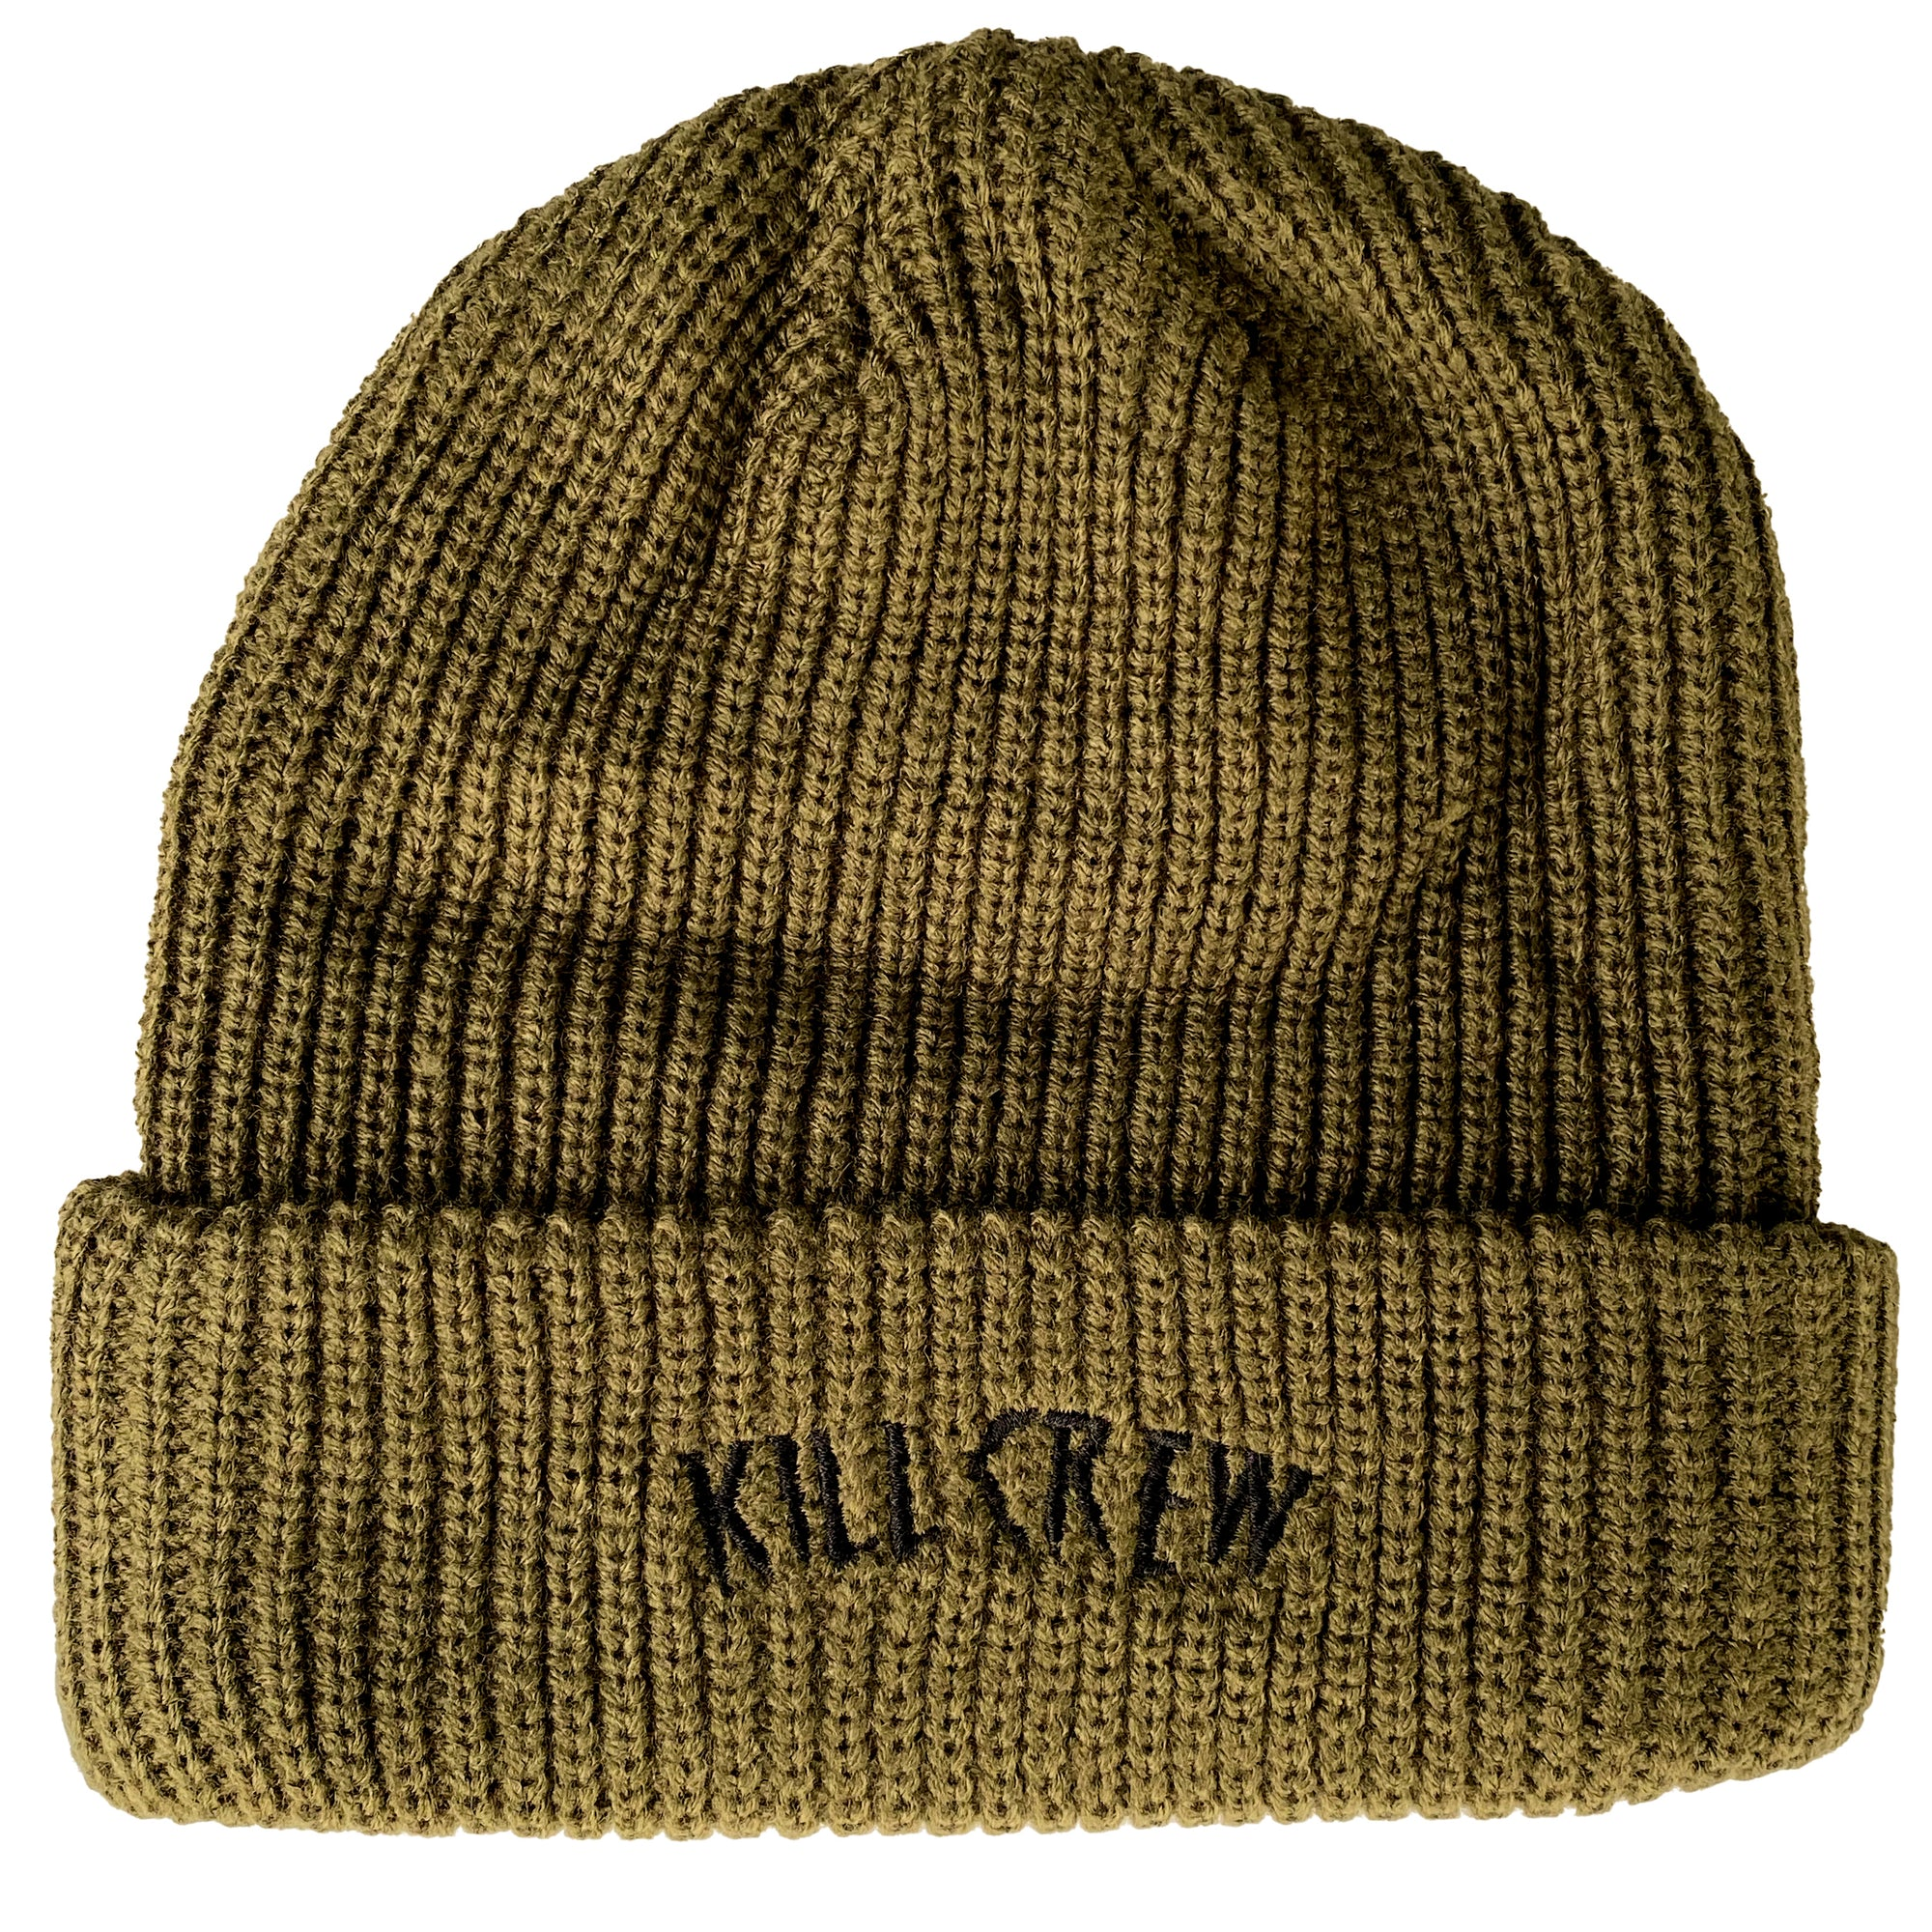 EMBROIDERED CUFFED BEANIE - OLIVE